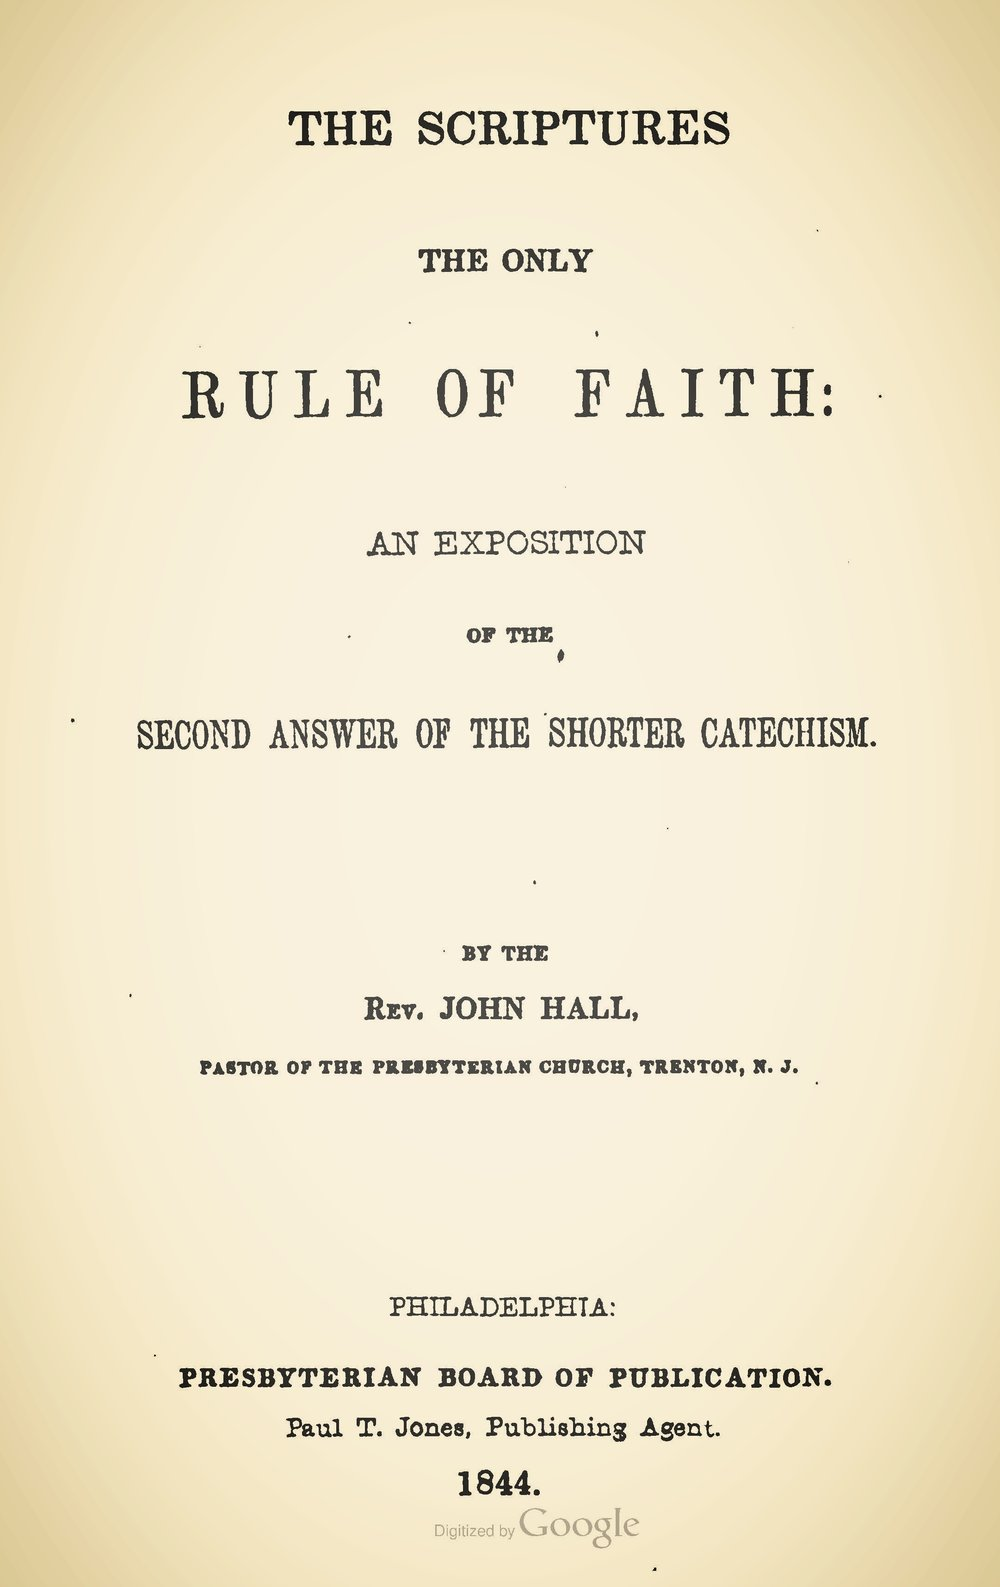 Hall, John, The Scriptures the Only Rule of Faith Title Page.jpg